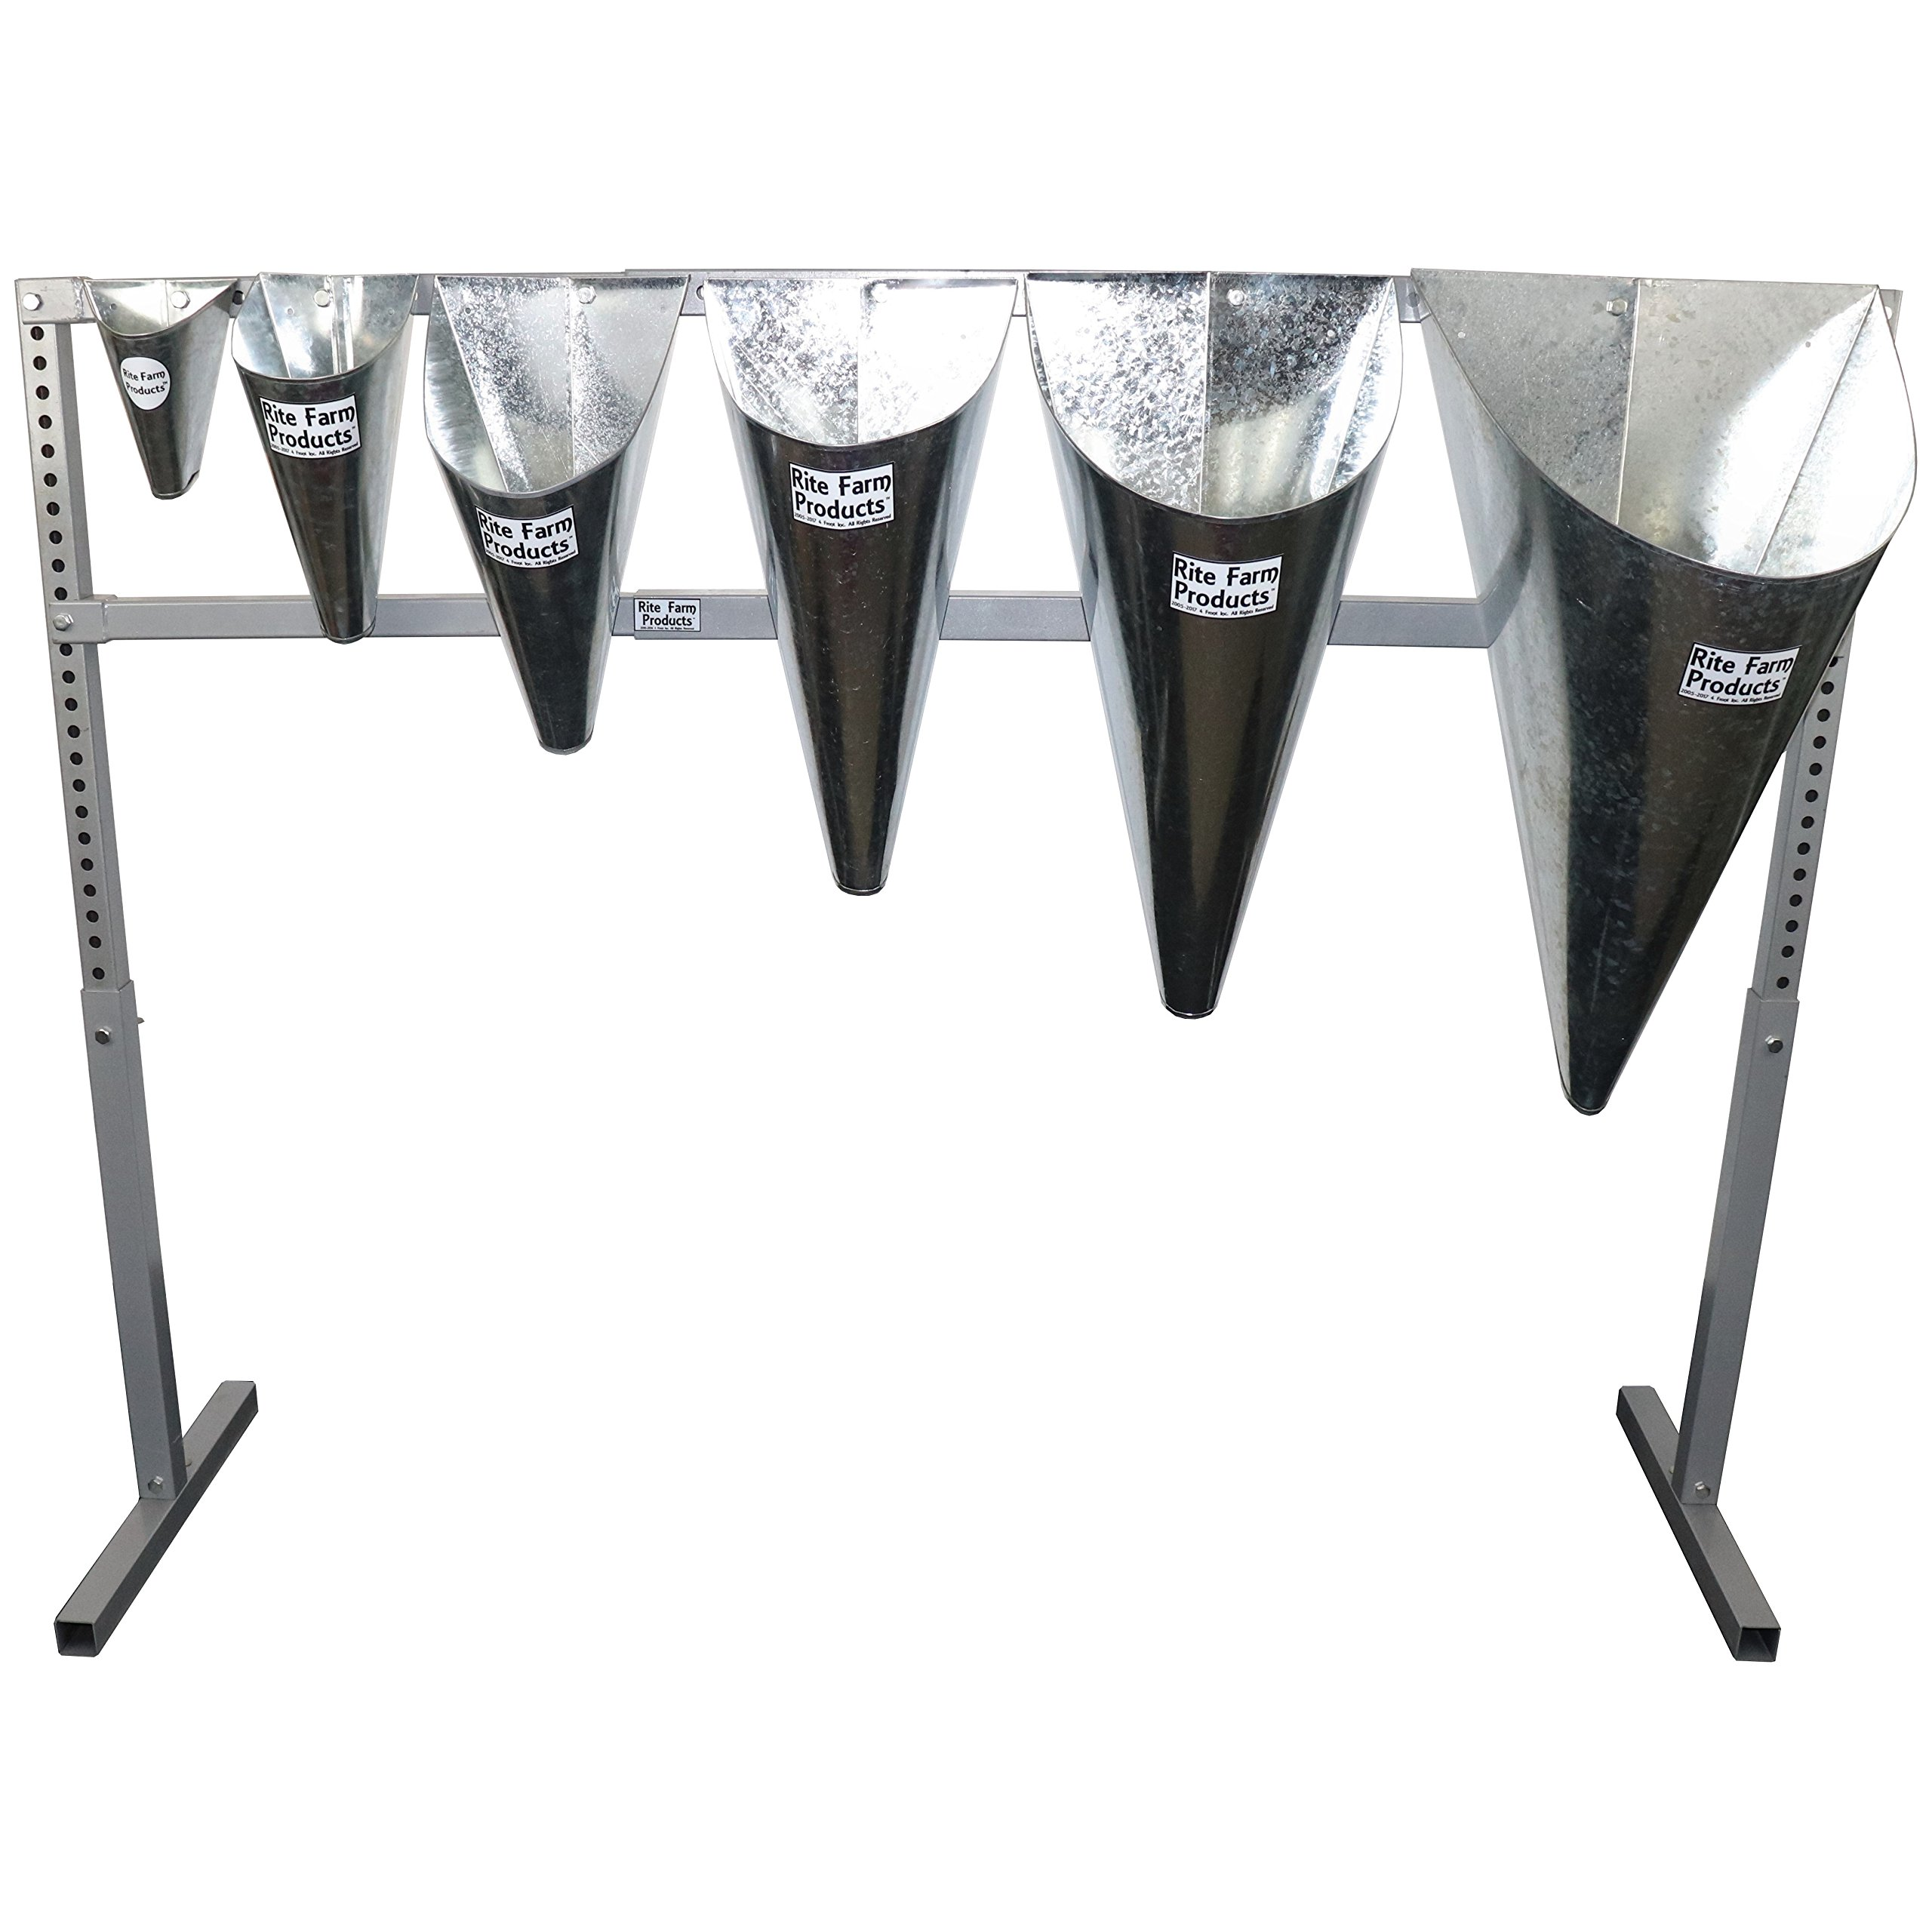 RITE FARM PRODUCTS PROCESSING CONE STAND CHICKEN TURKEY RESTRAINING KILLING KILL by Rite Farm Products